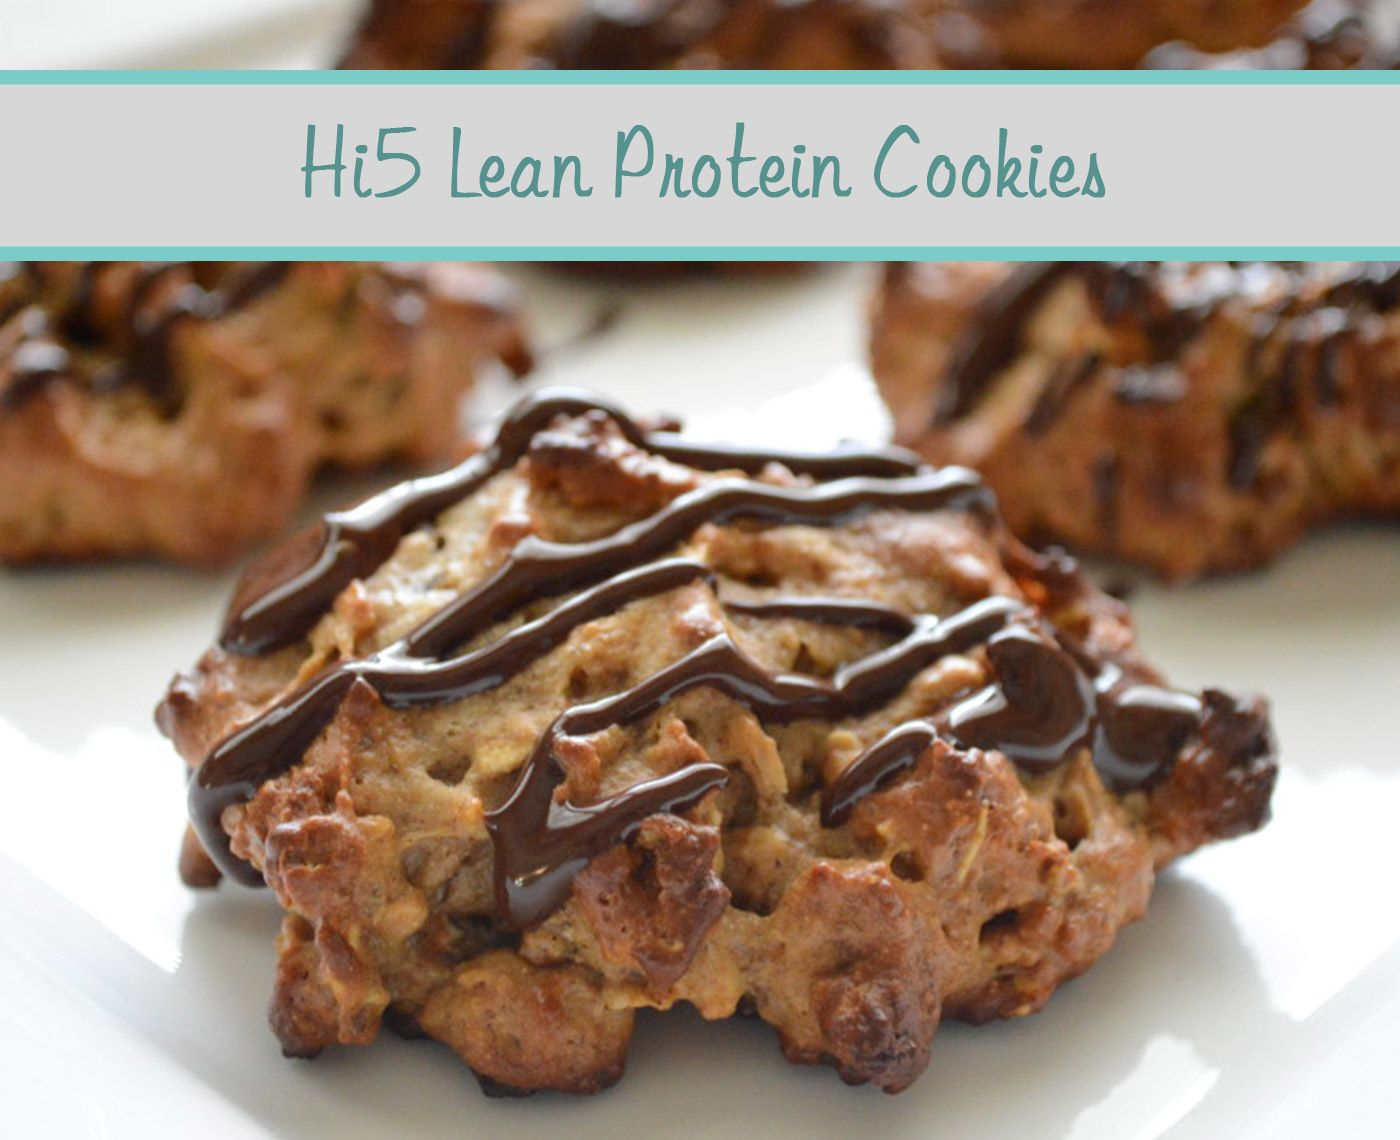 Looking for an on-the-go snack that is both healthy and nutritious? We have just want you need! Check out this delicious Hi5 Lean Protein Cookie recipe.